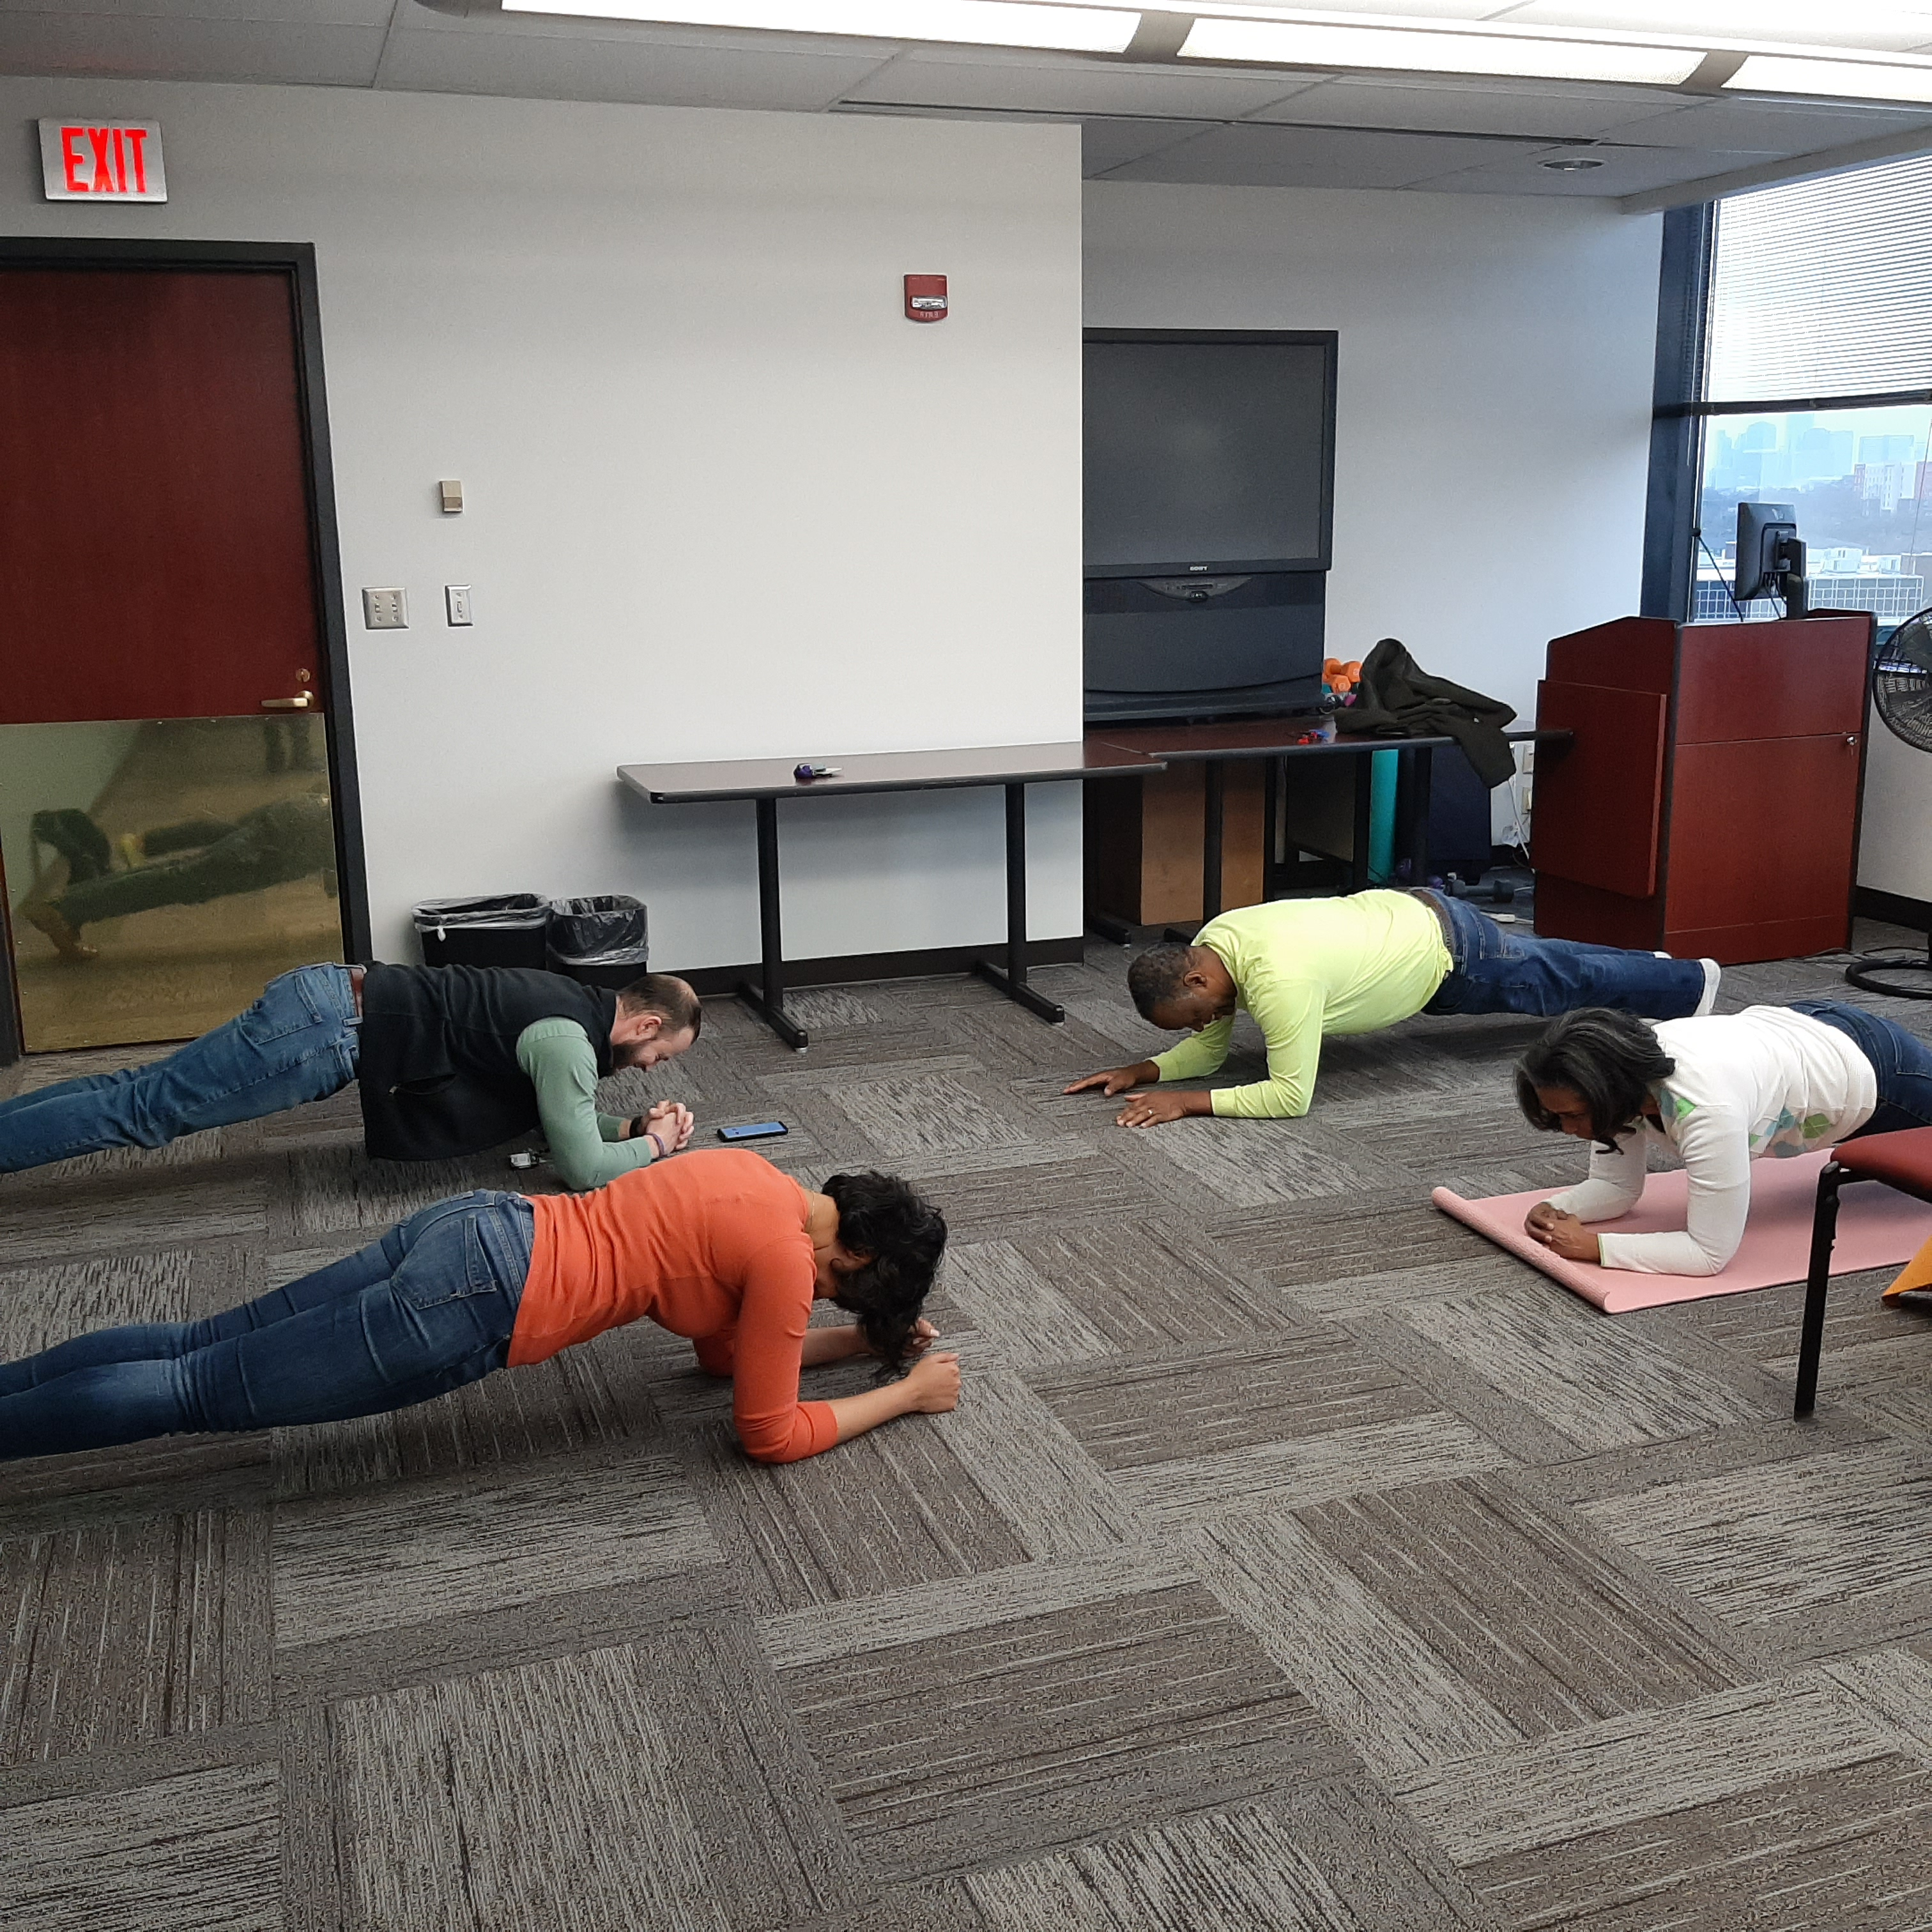 DHS and DCS employees had a little friendly competition with a plank challenge.